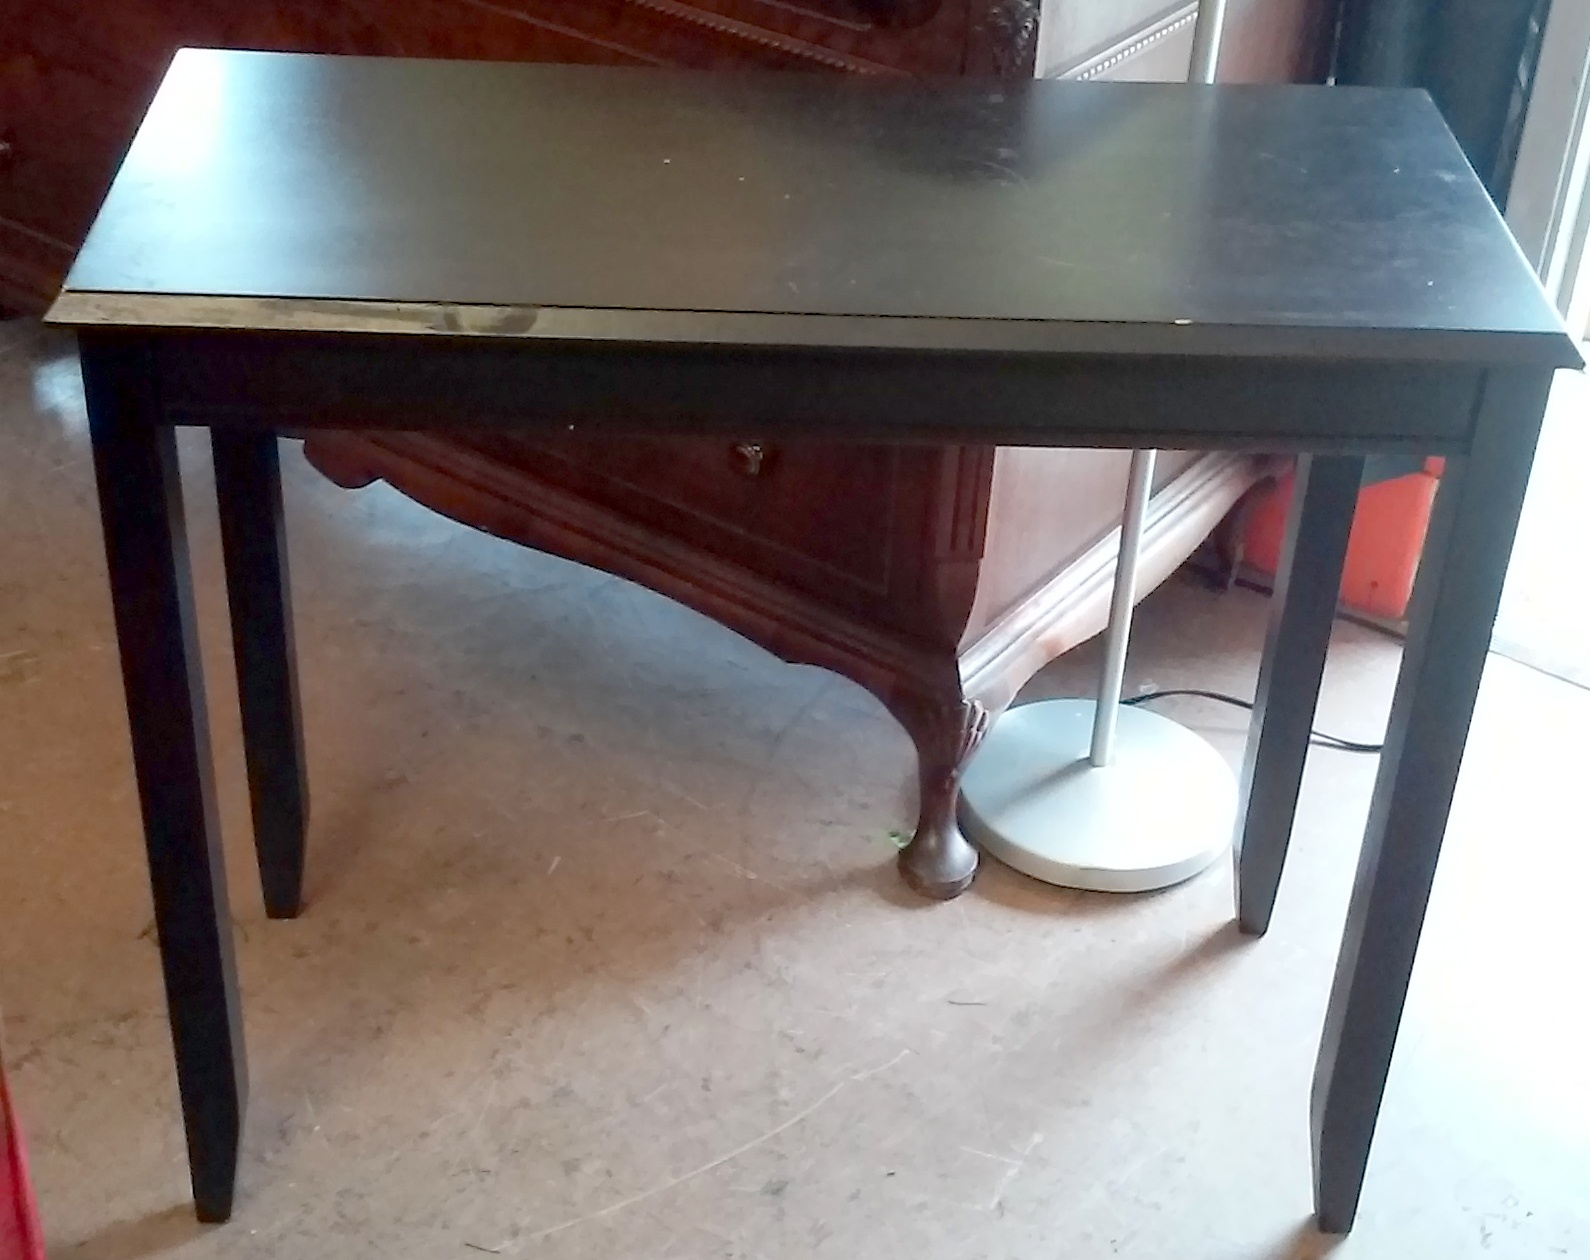 Uhuru furniture collectibles sold 34 wooden ikea idbyn - Table console extensible solde ...